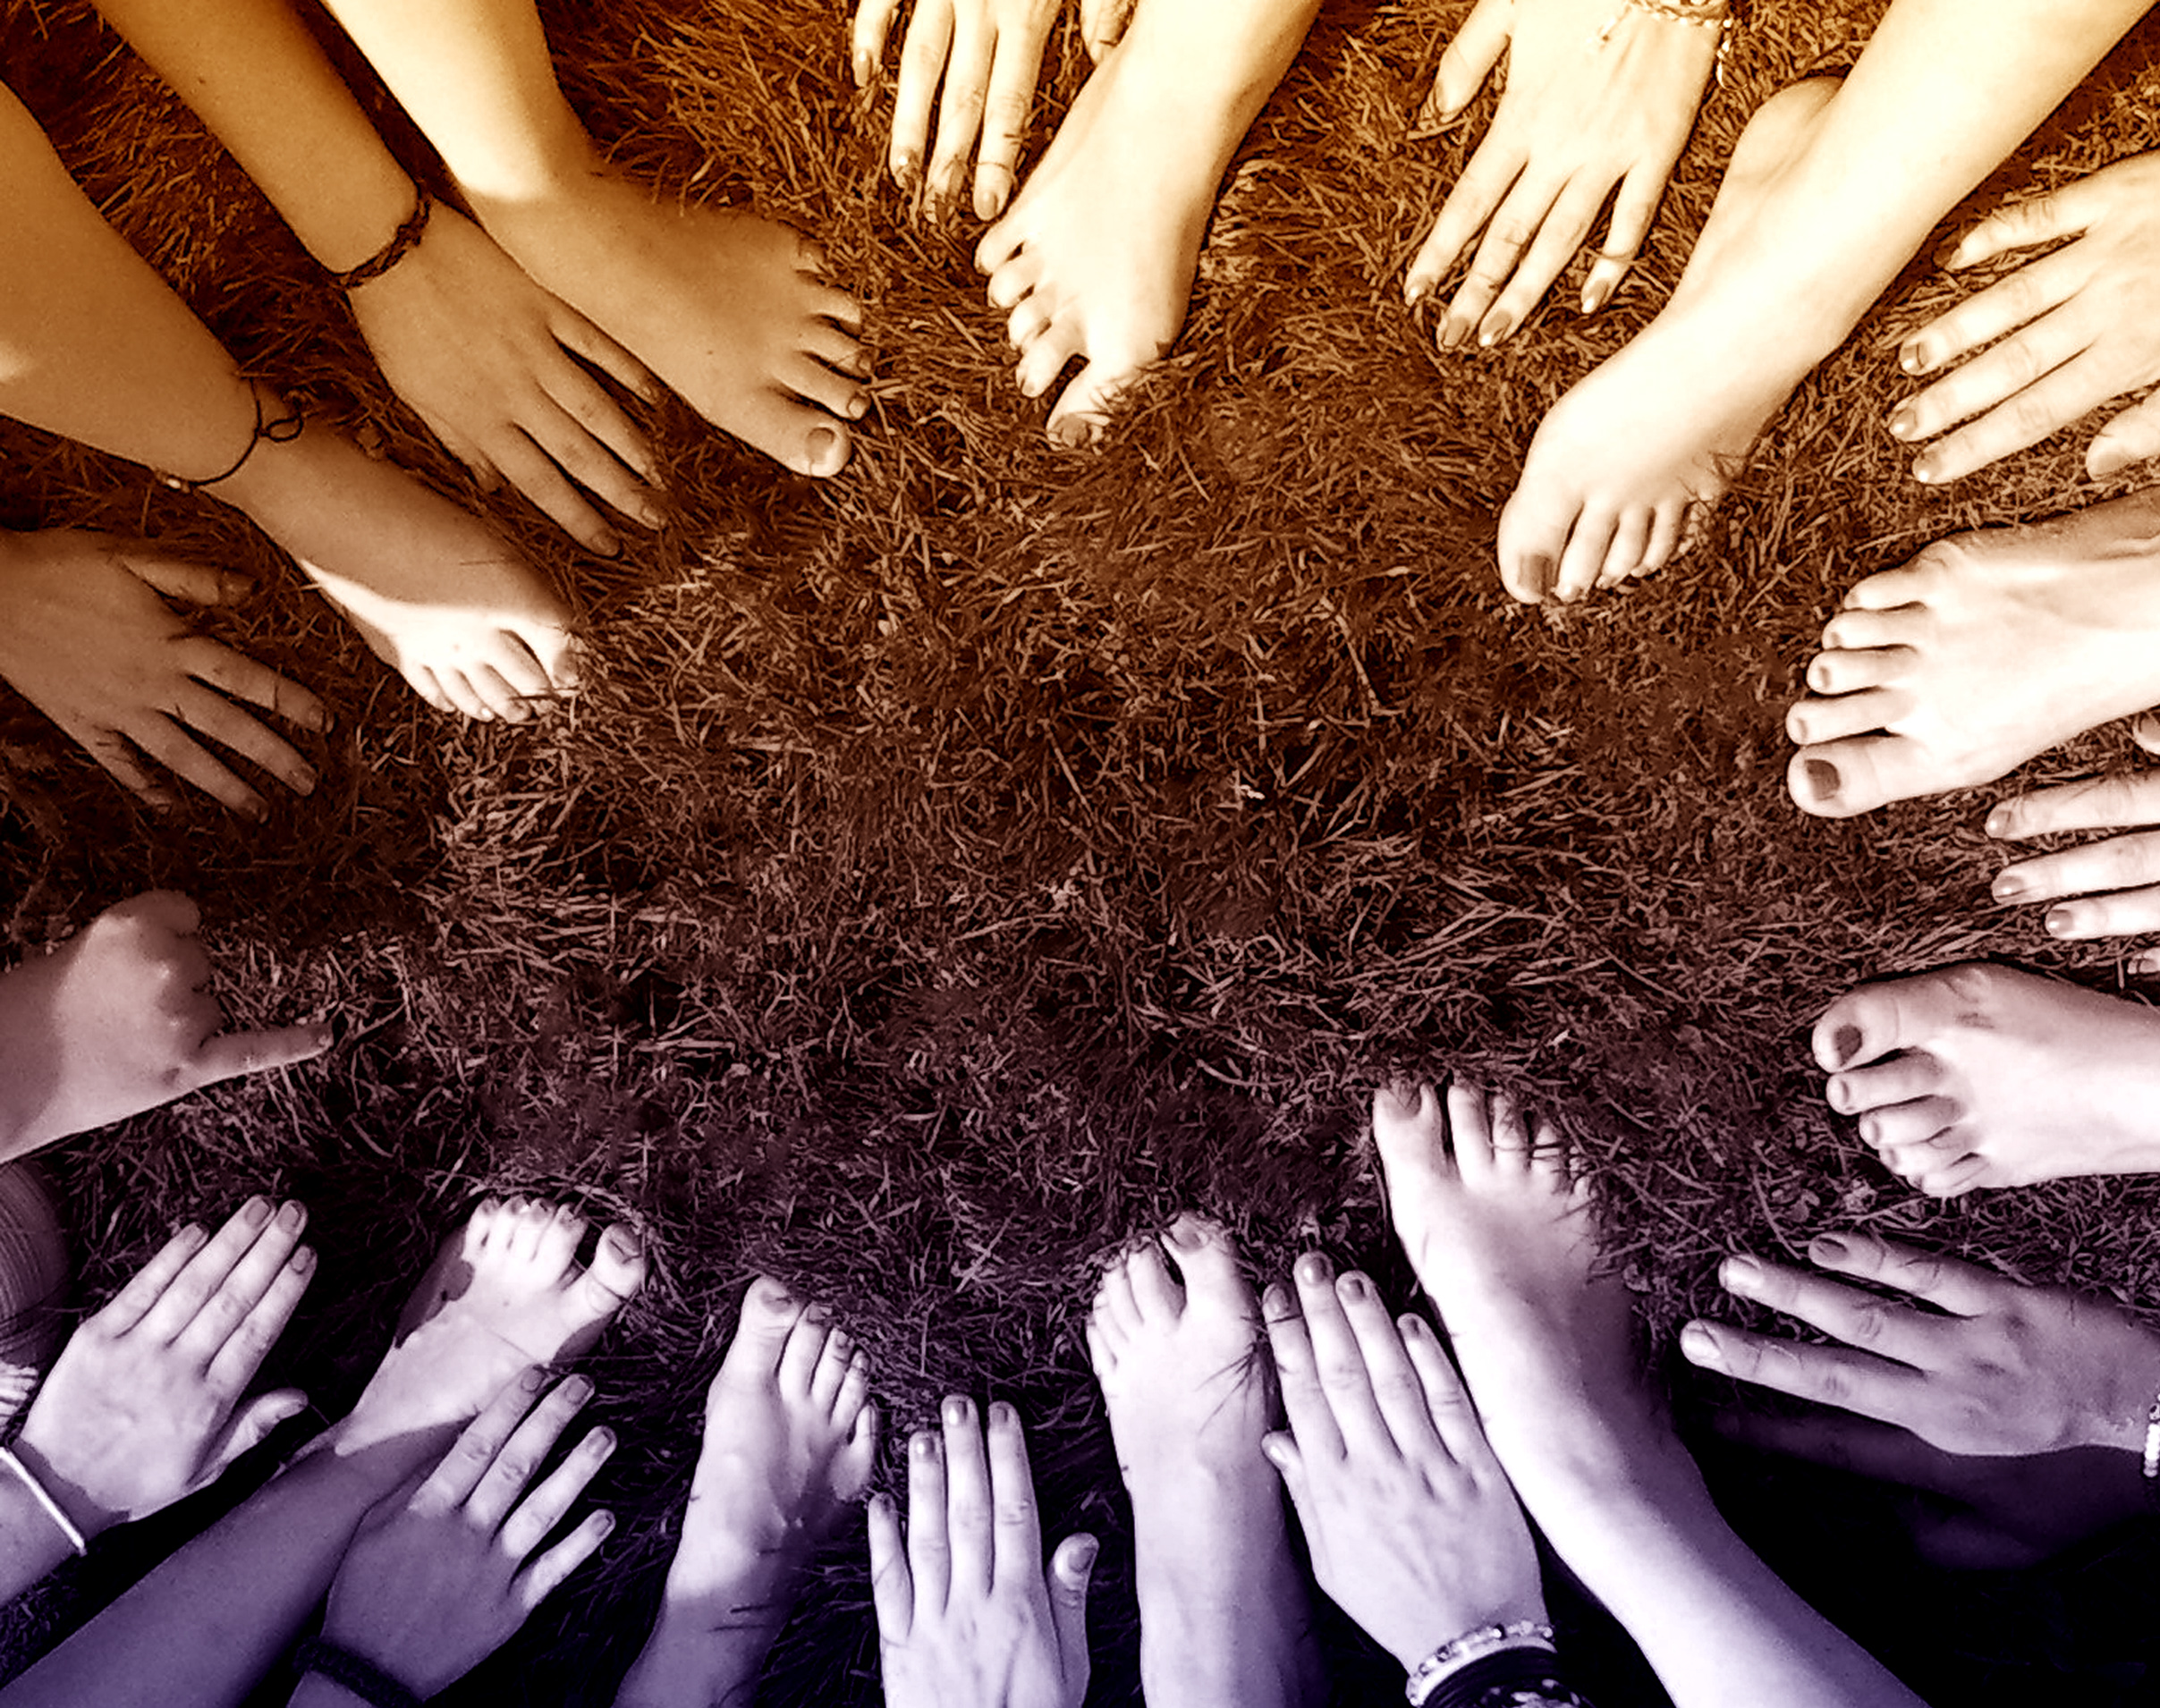 All Together - People Joining Hands and Feet in a Circle, Agreement, Sale, Round, Ring, HQ Photo